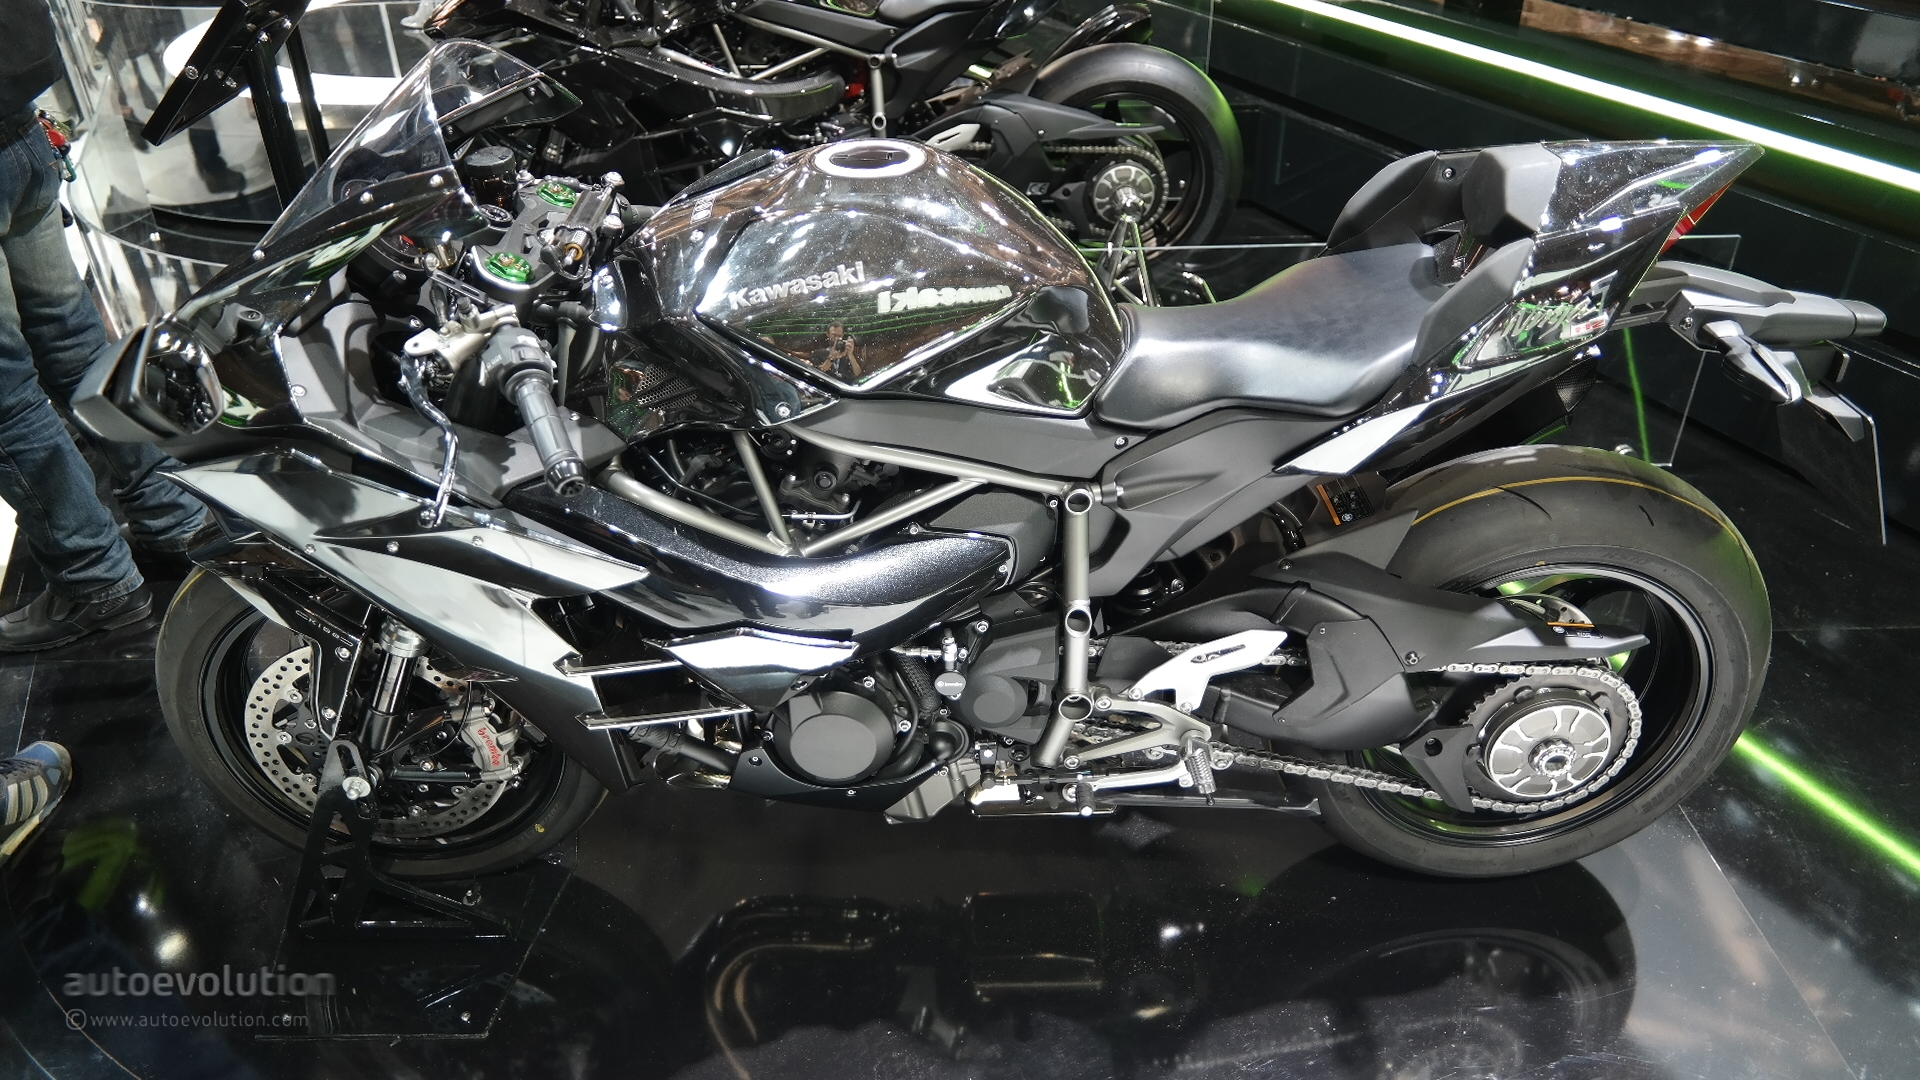 2016 kawasaki ninja h2 seen from up-close, priced - autoevolution